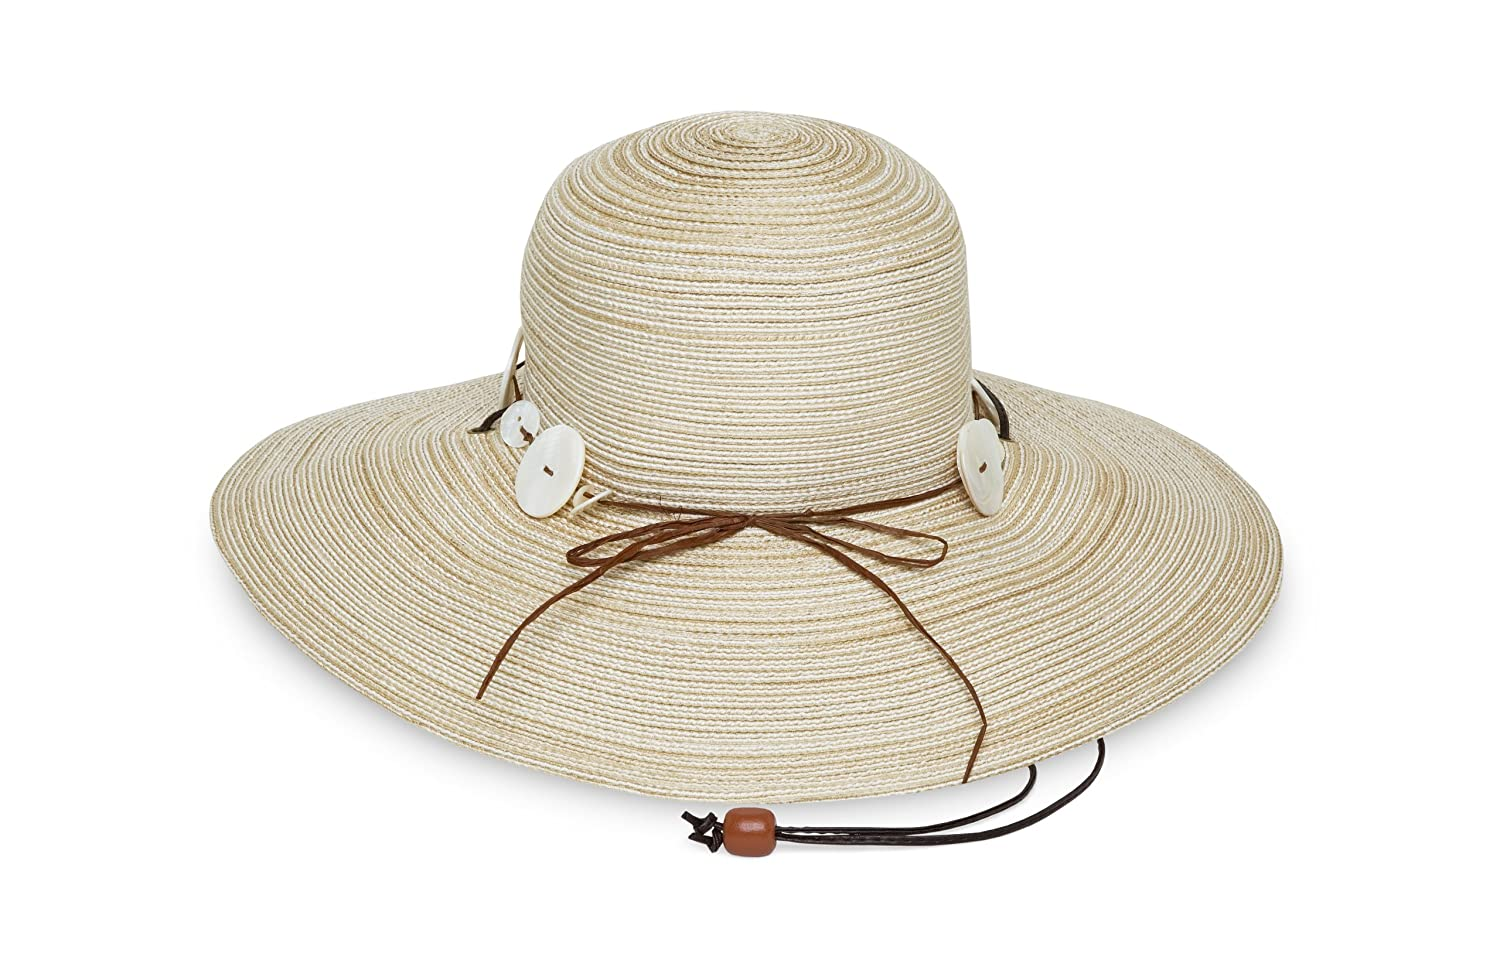 Sunday Afternoons Women's Caribbean Hat, Dune, One Size INC S2C24012C22707